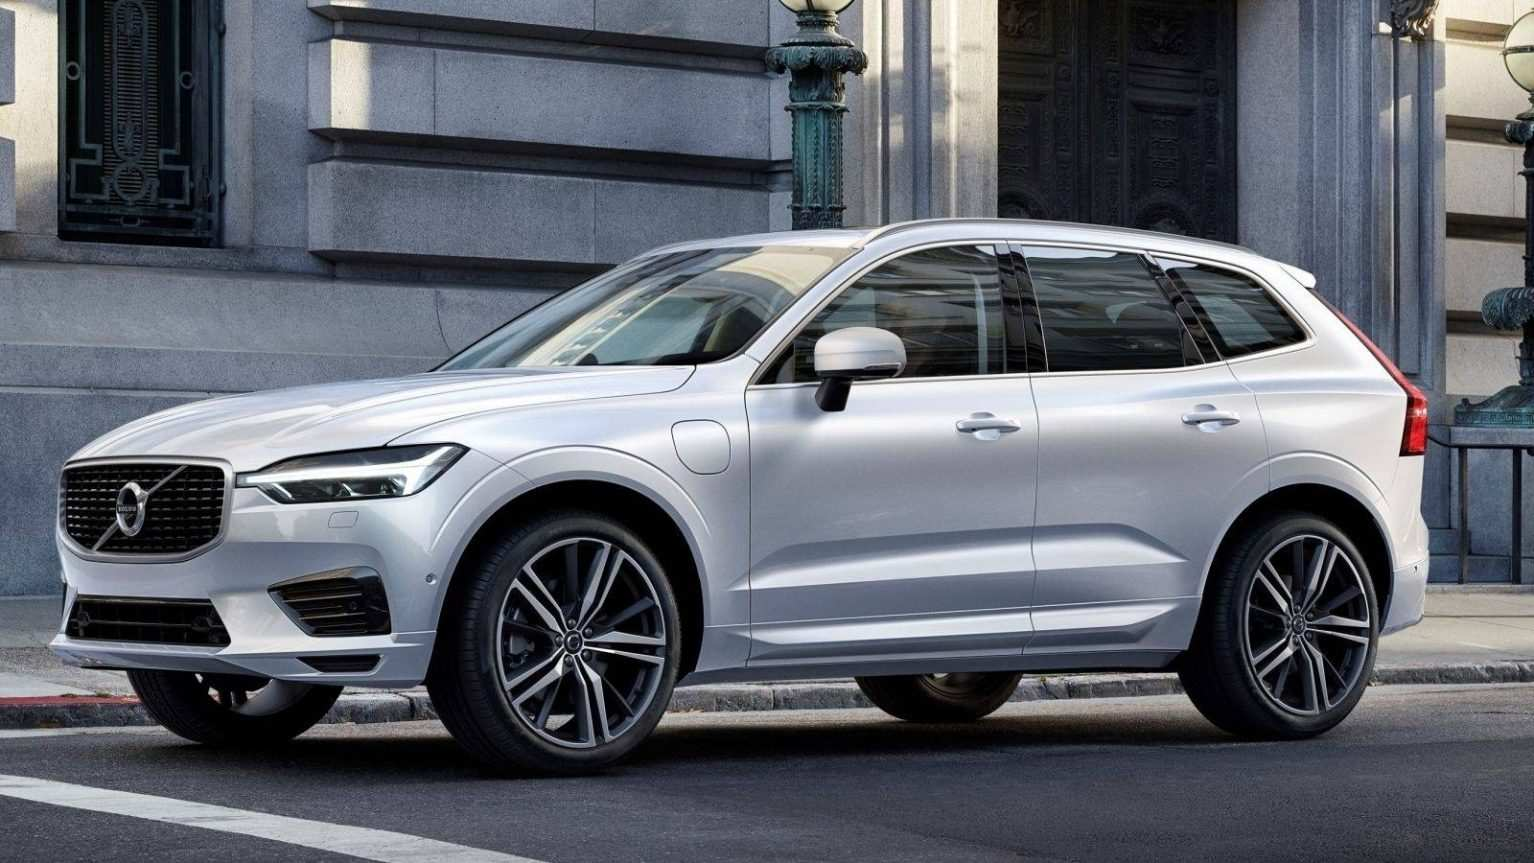 23 All New Best Volvo 2019 Xc60 Review Exterior Ratings by Best Volvo 2019 Xc60 Review Exterior